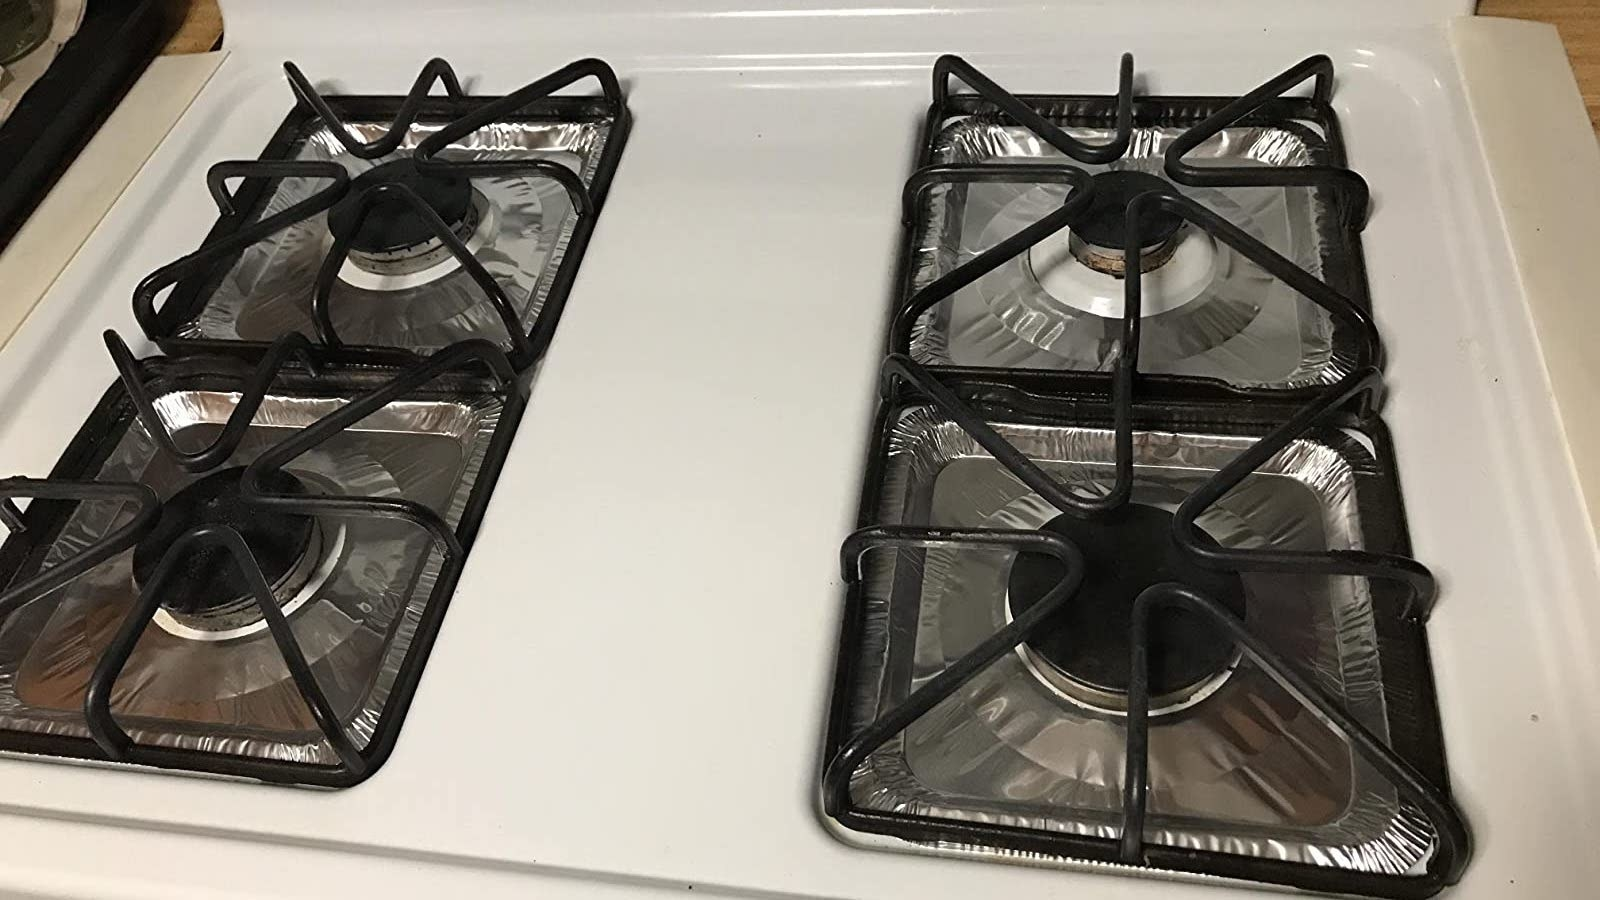 Reviewer photo of foil liners placed on gas stove range